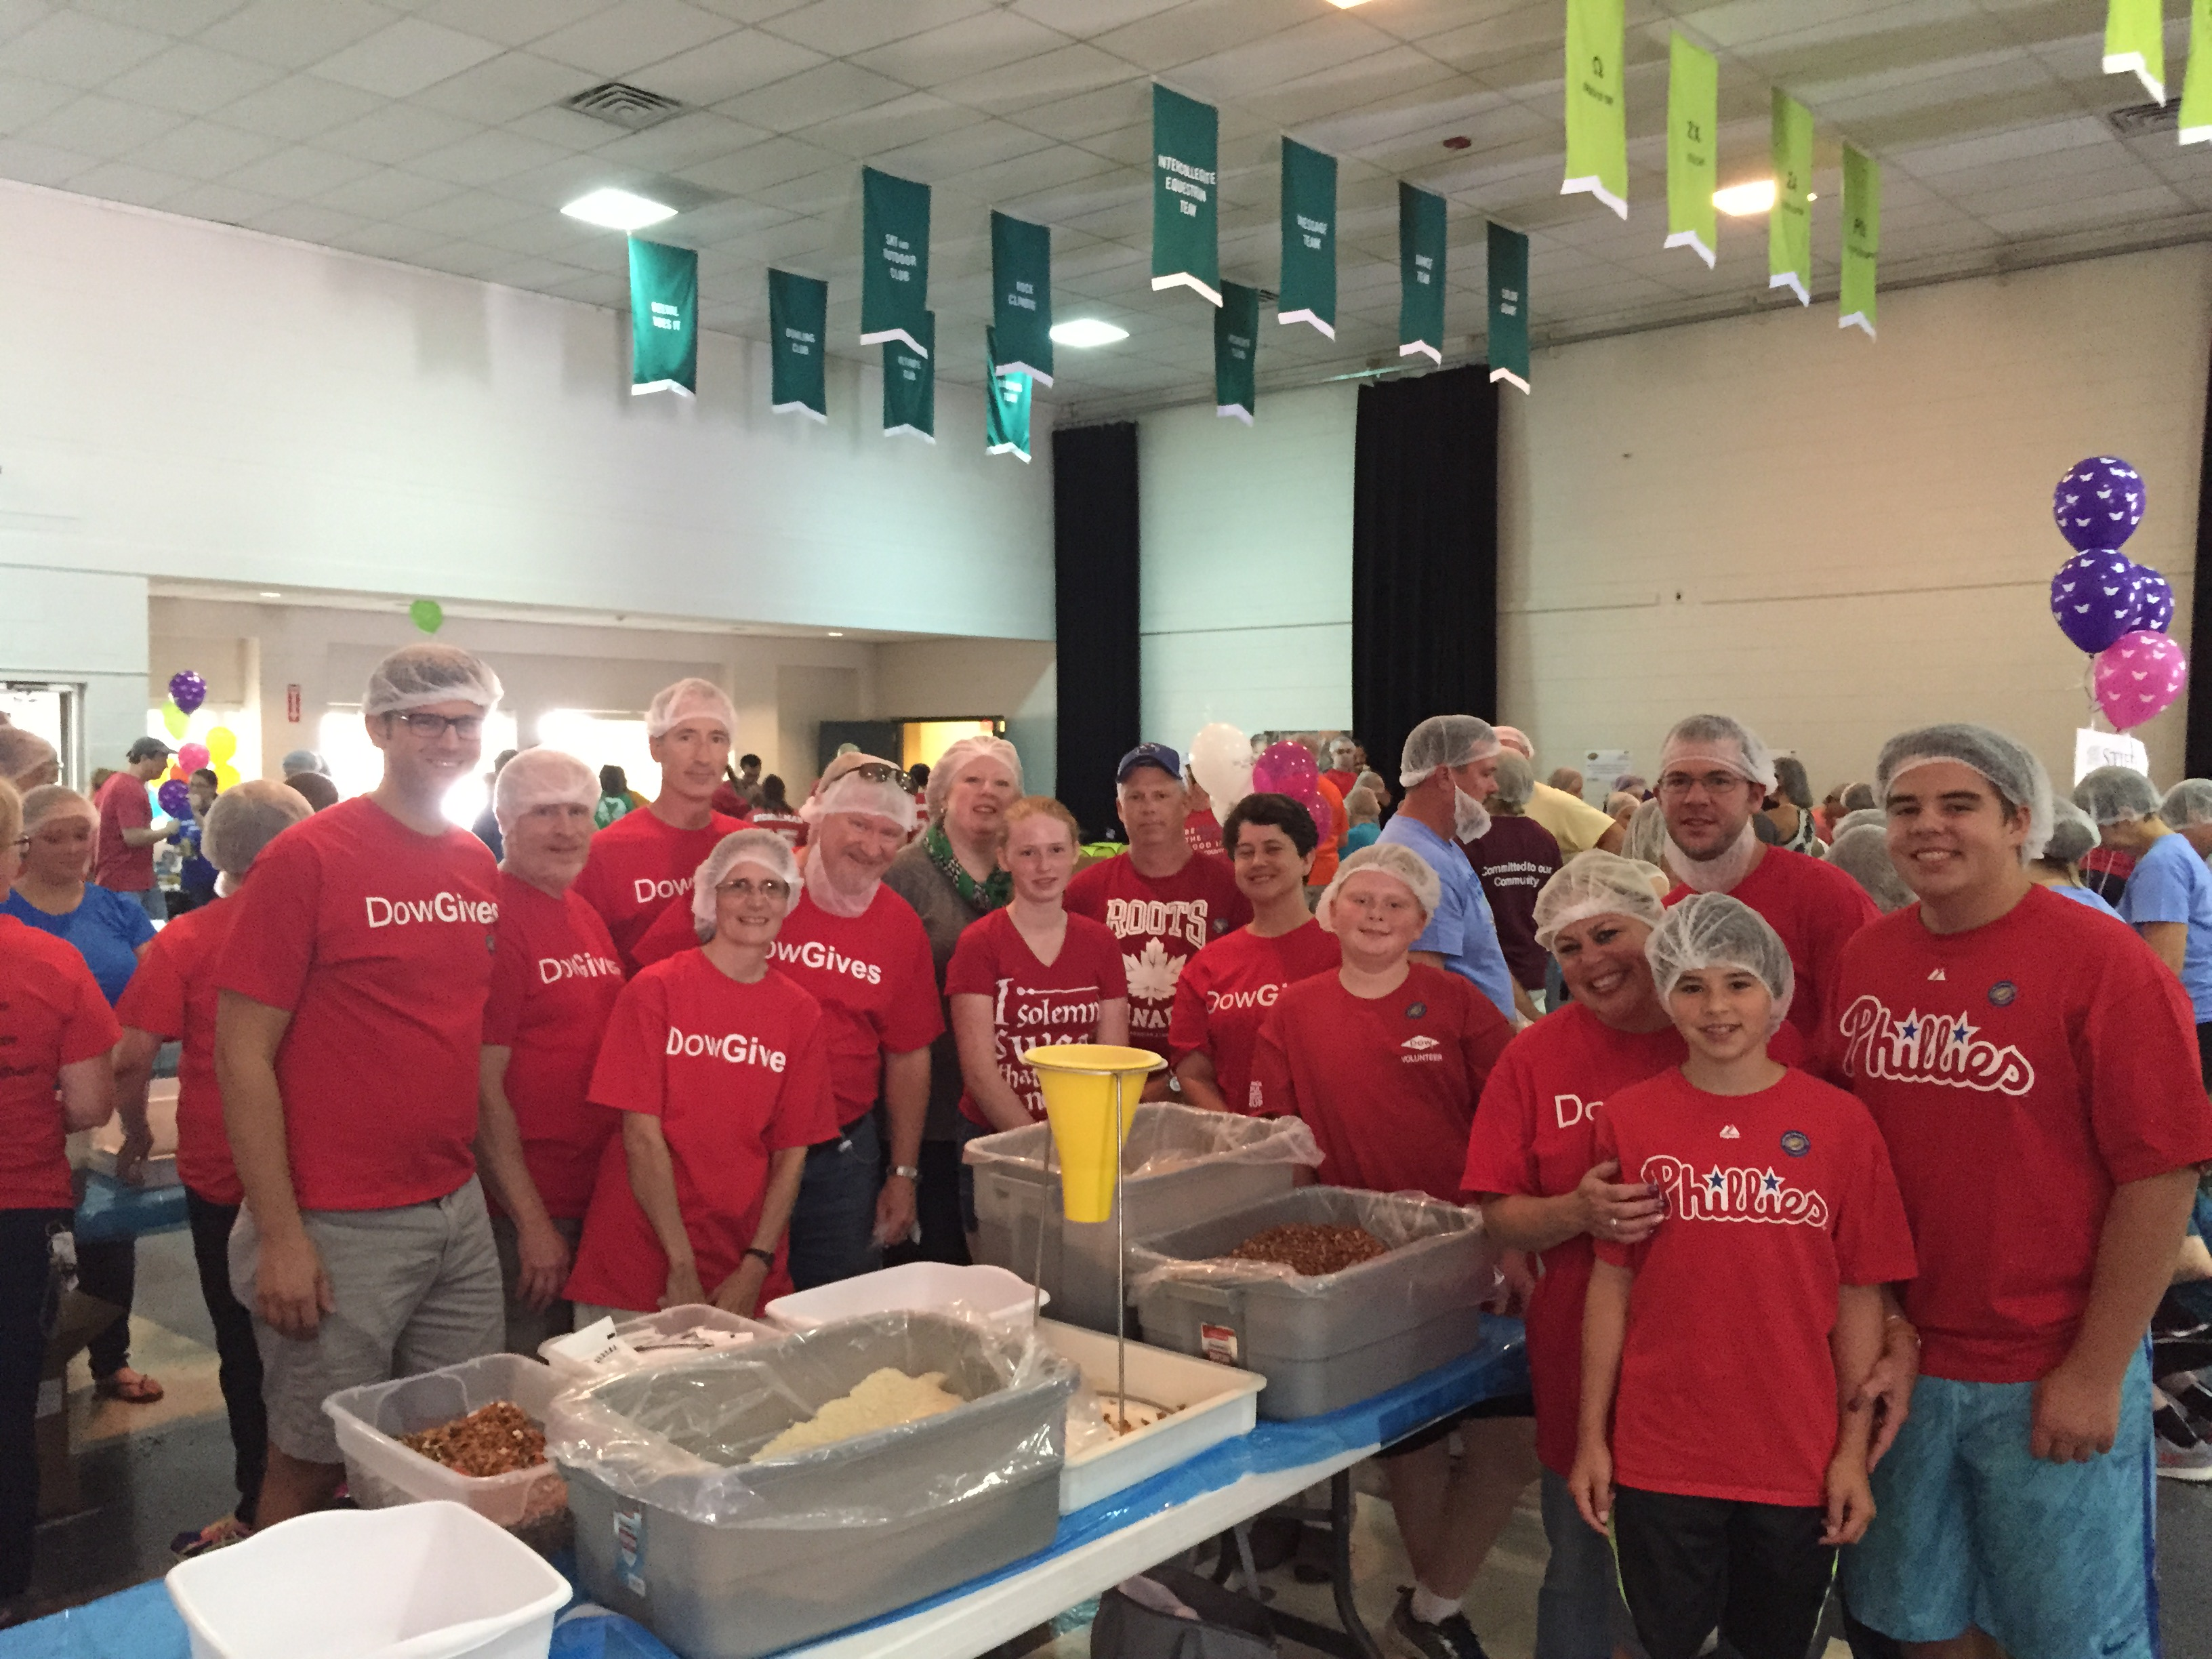 3rd Quarter 2015 BKO hunger event